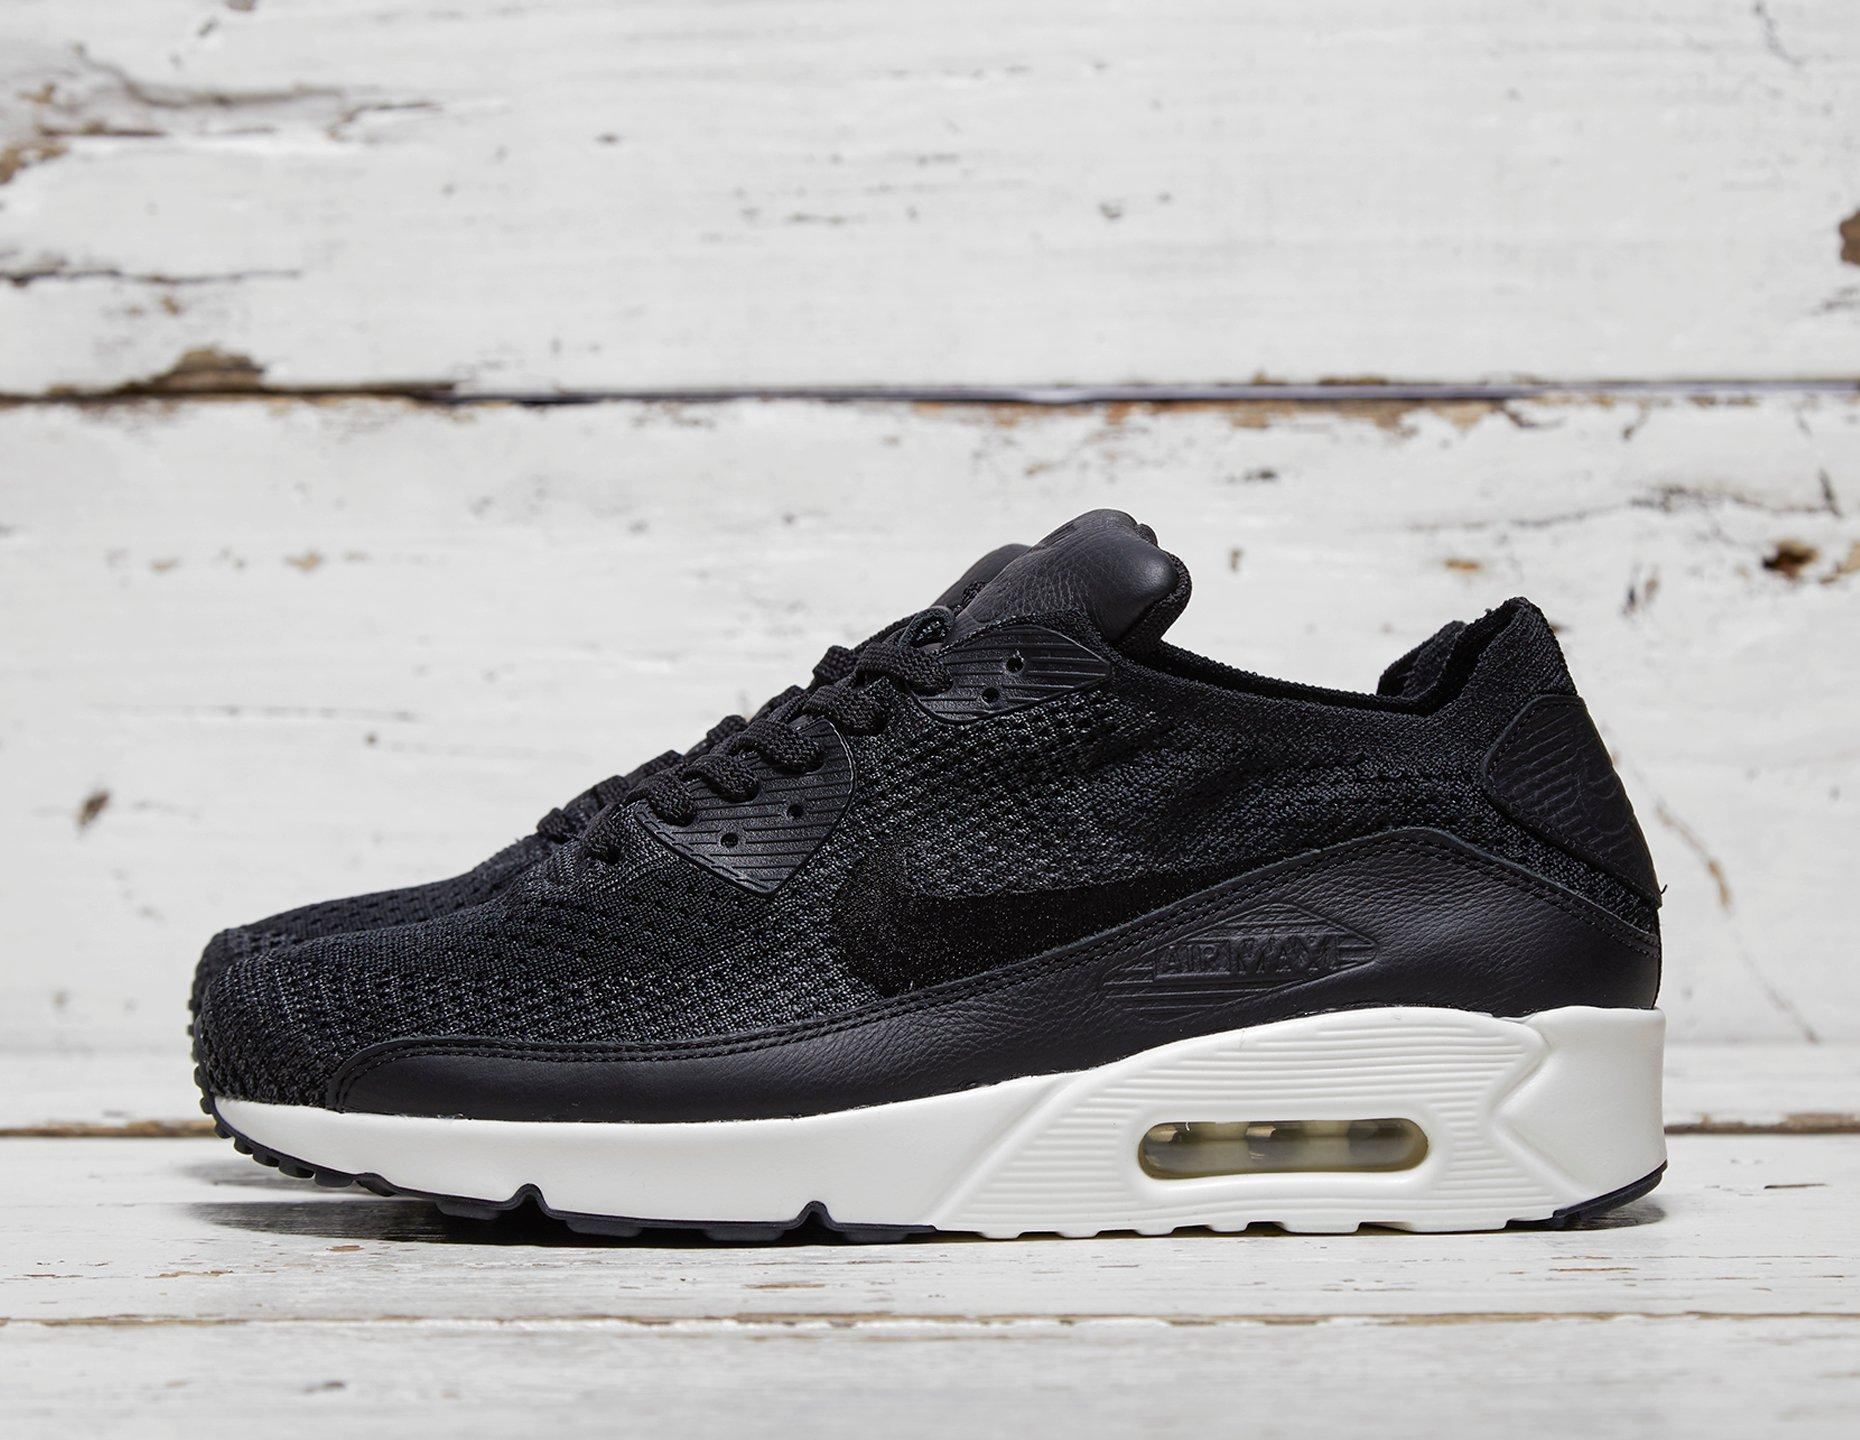 100% authentic f8cc7 28ca1 A NikeLab Air Max 90 Flyknit Has Emerged - WearTesters